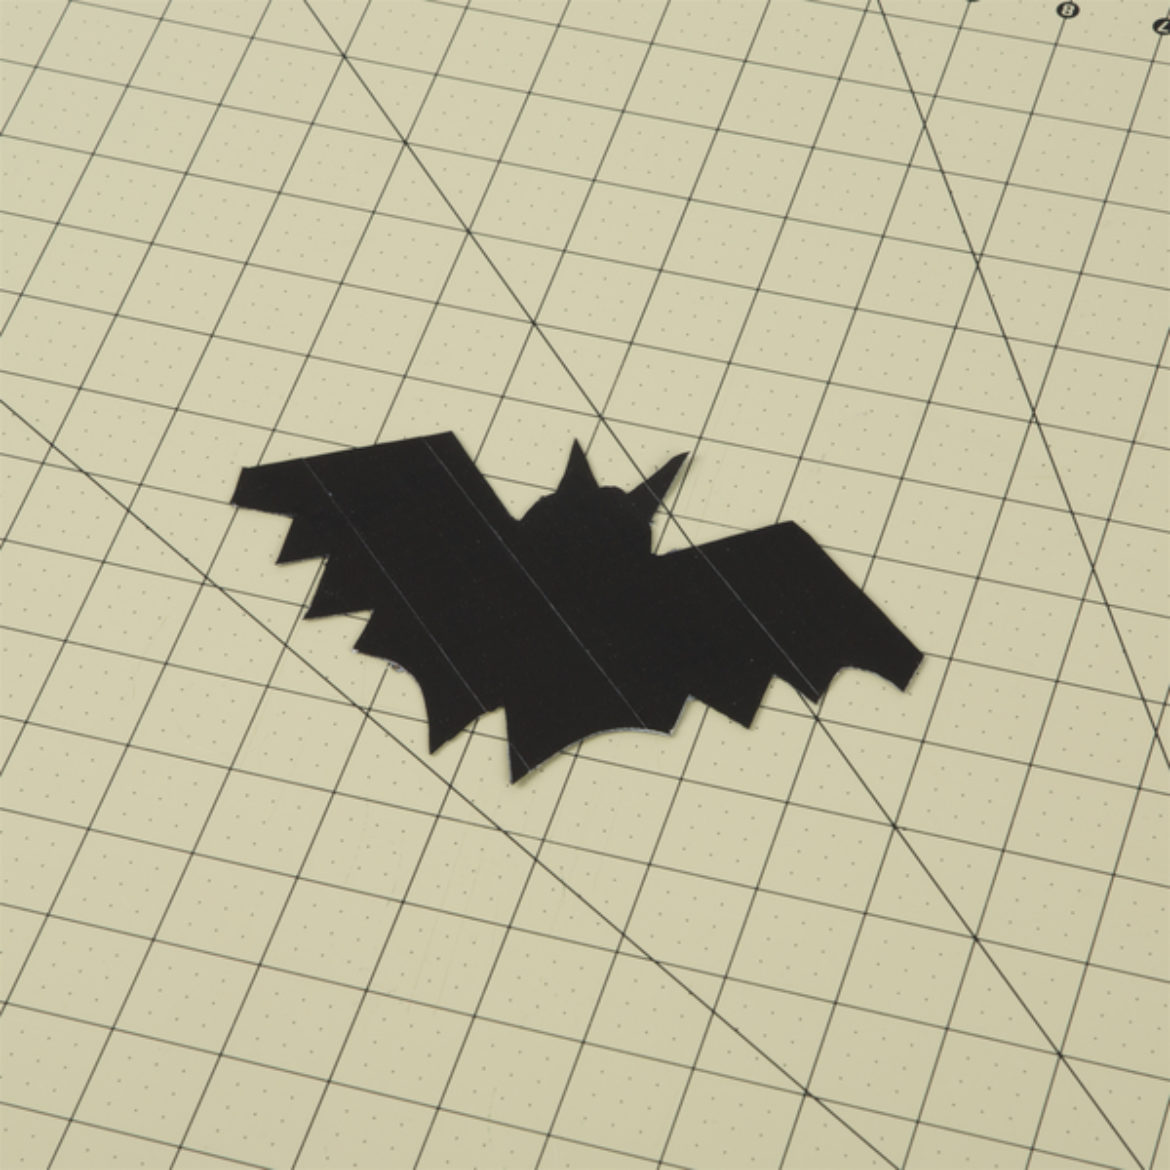 Bat from previous step cut out